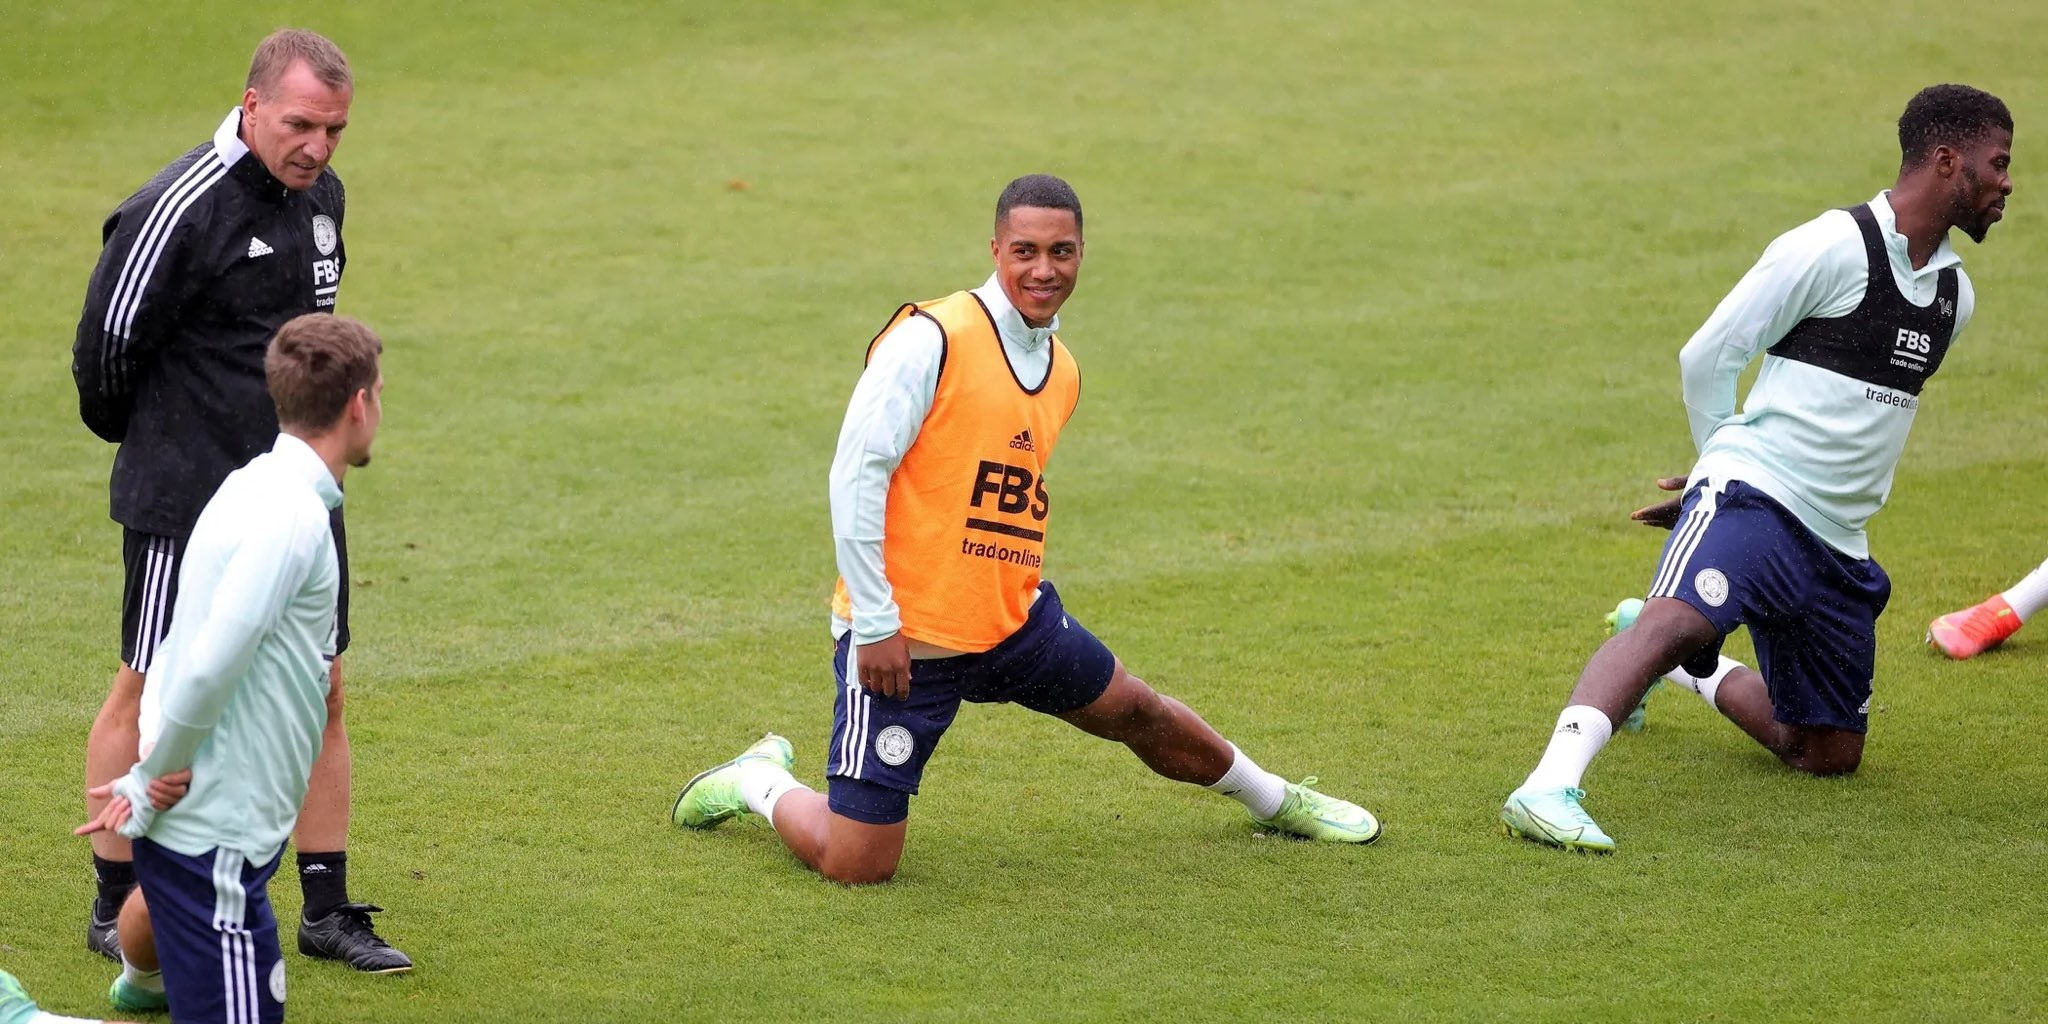 Ex-Leicester City star can 'understand' Liverpool-linked Tielemans wanting Anfield switch